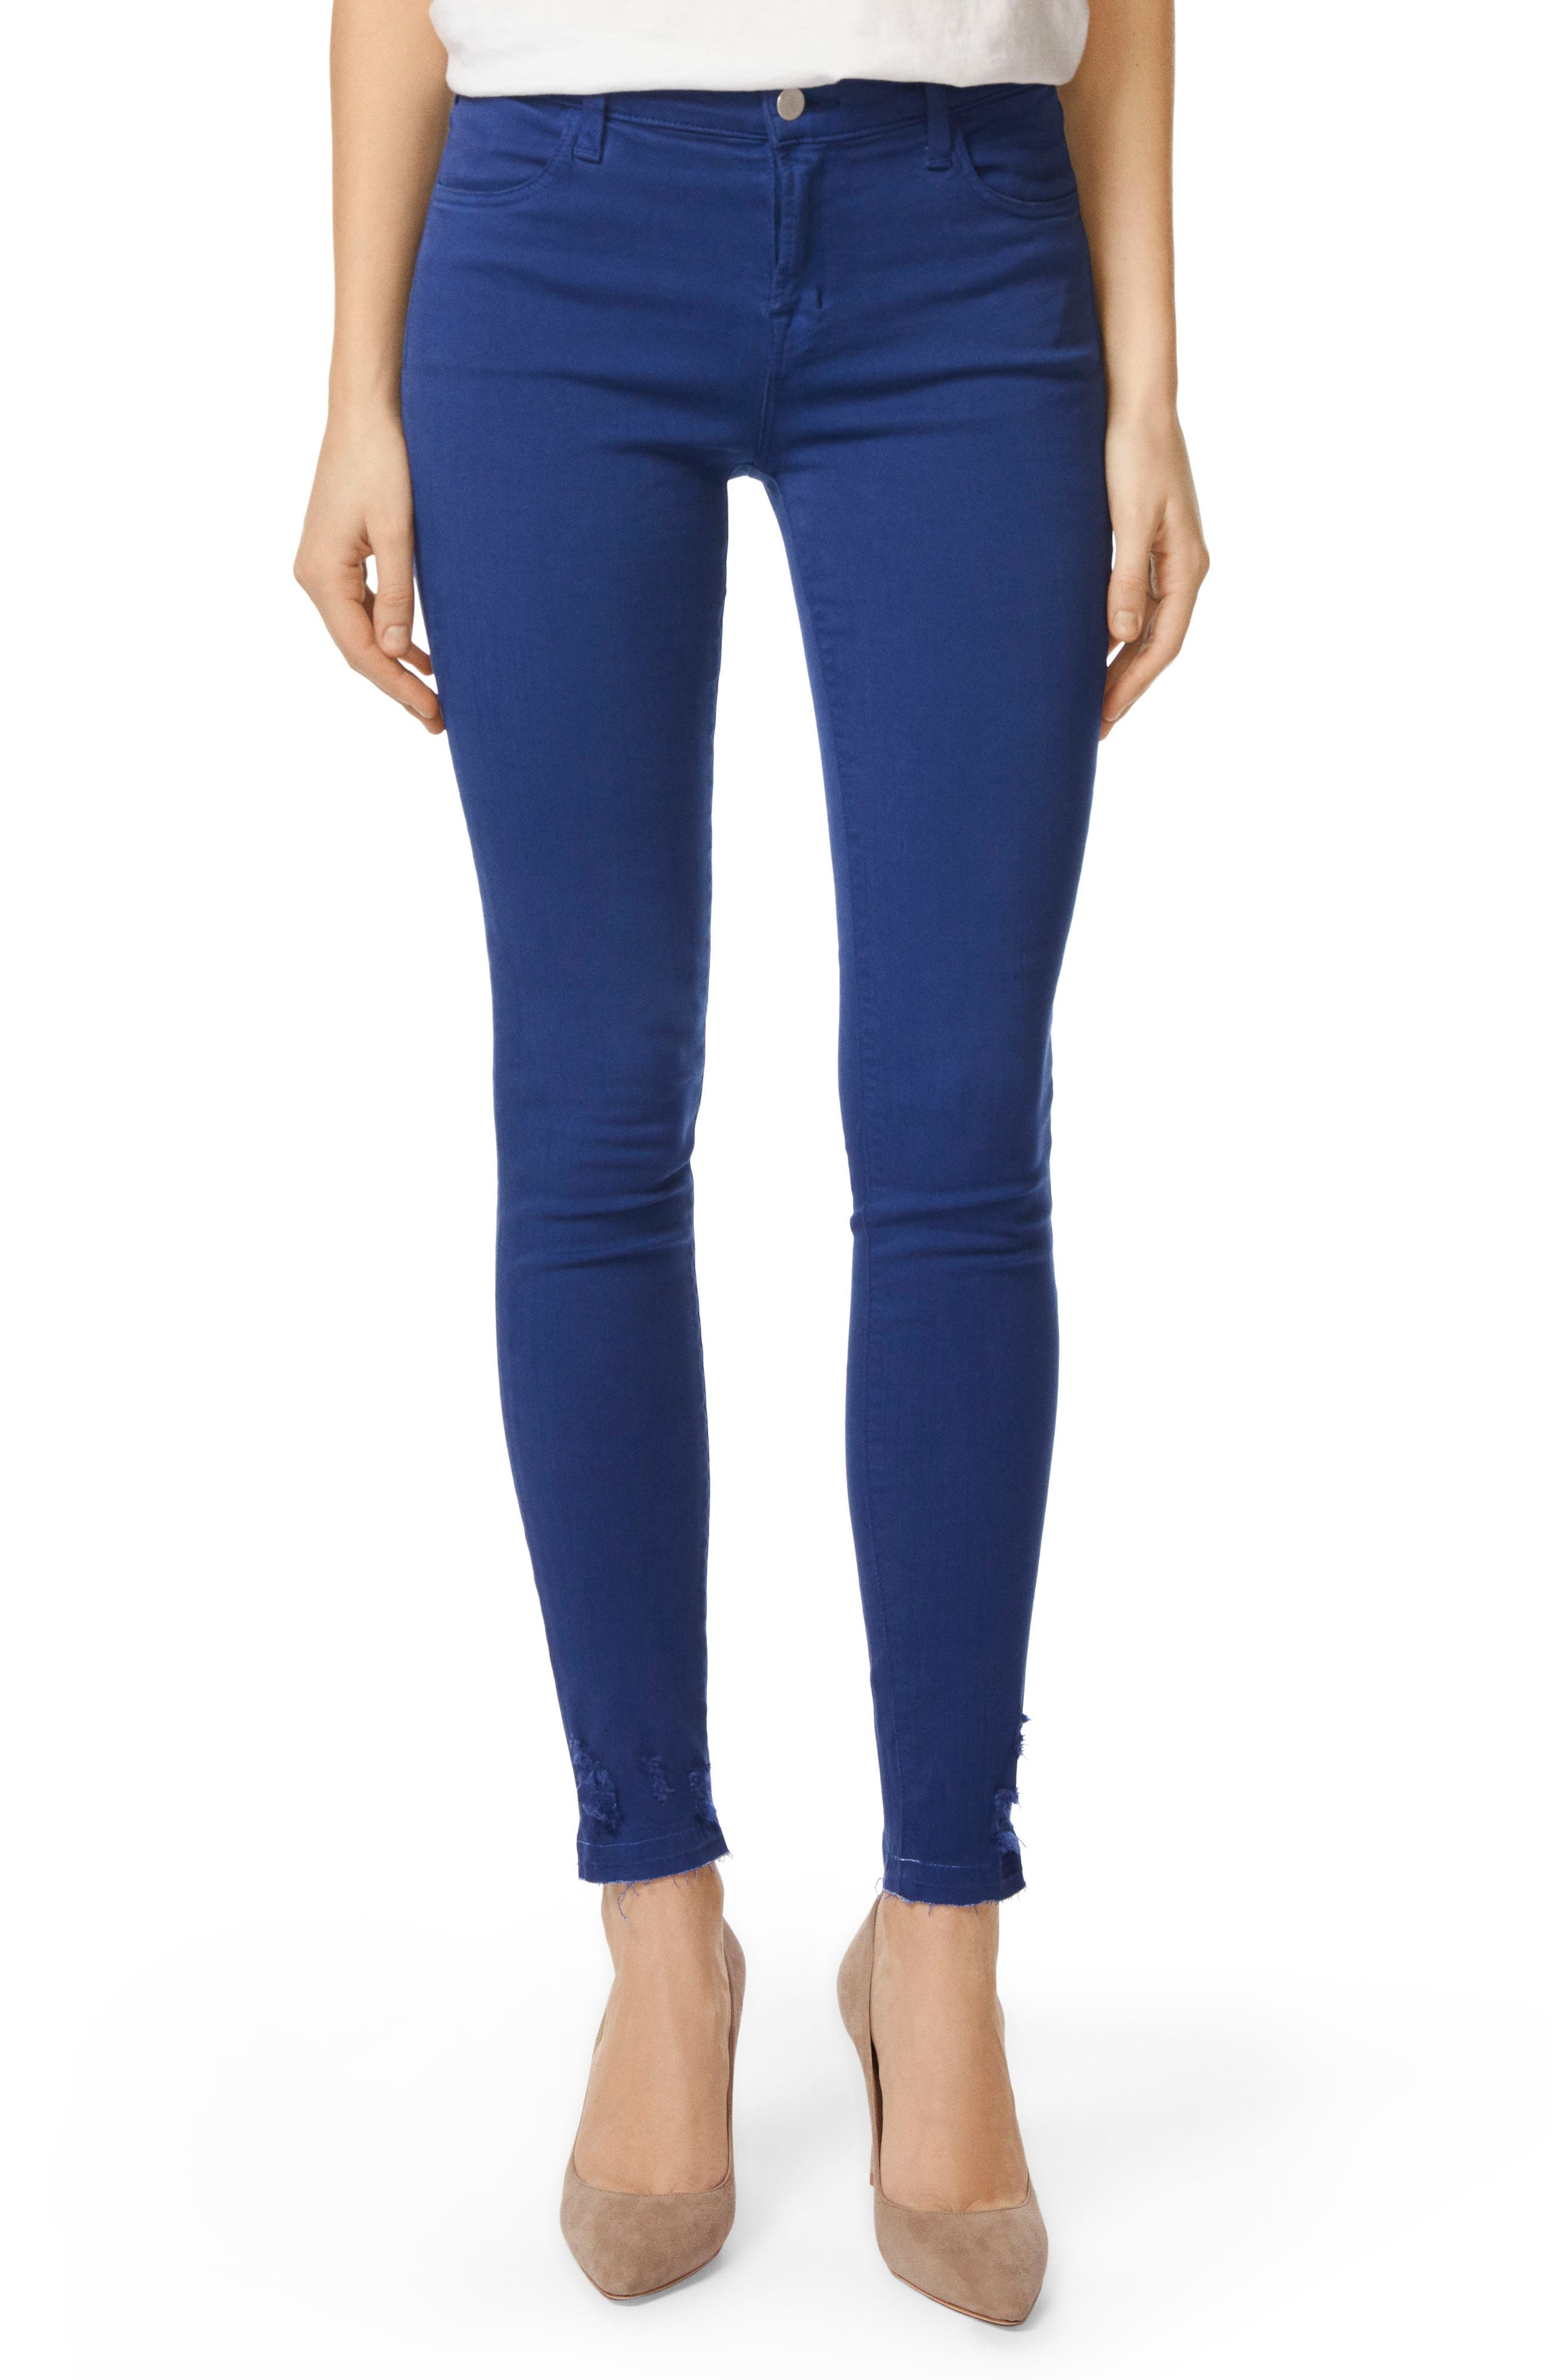 620 Mid Rise Super Skinny Jeans,                             Main thumbnail 1, color,                             436